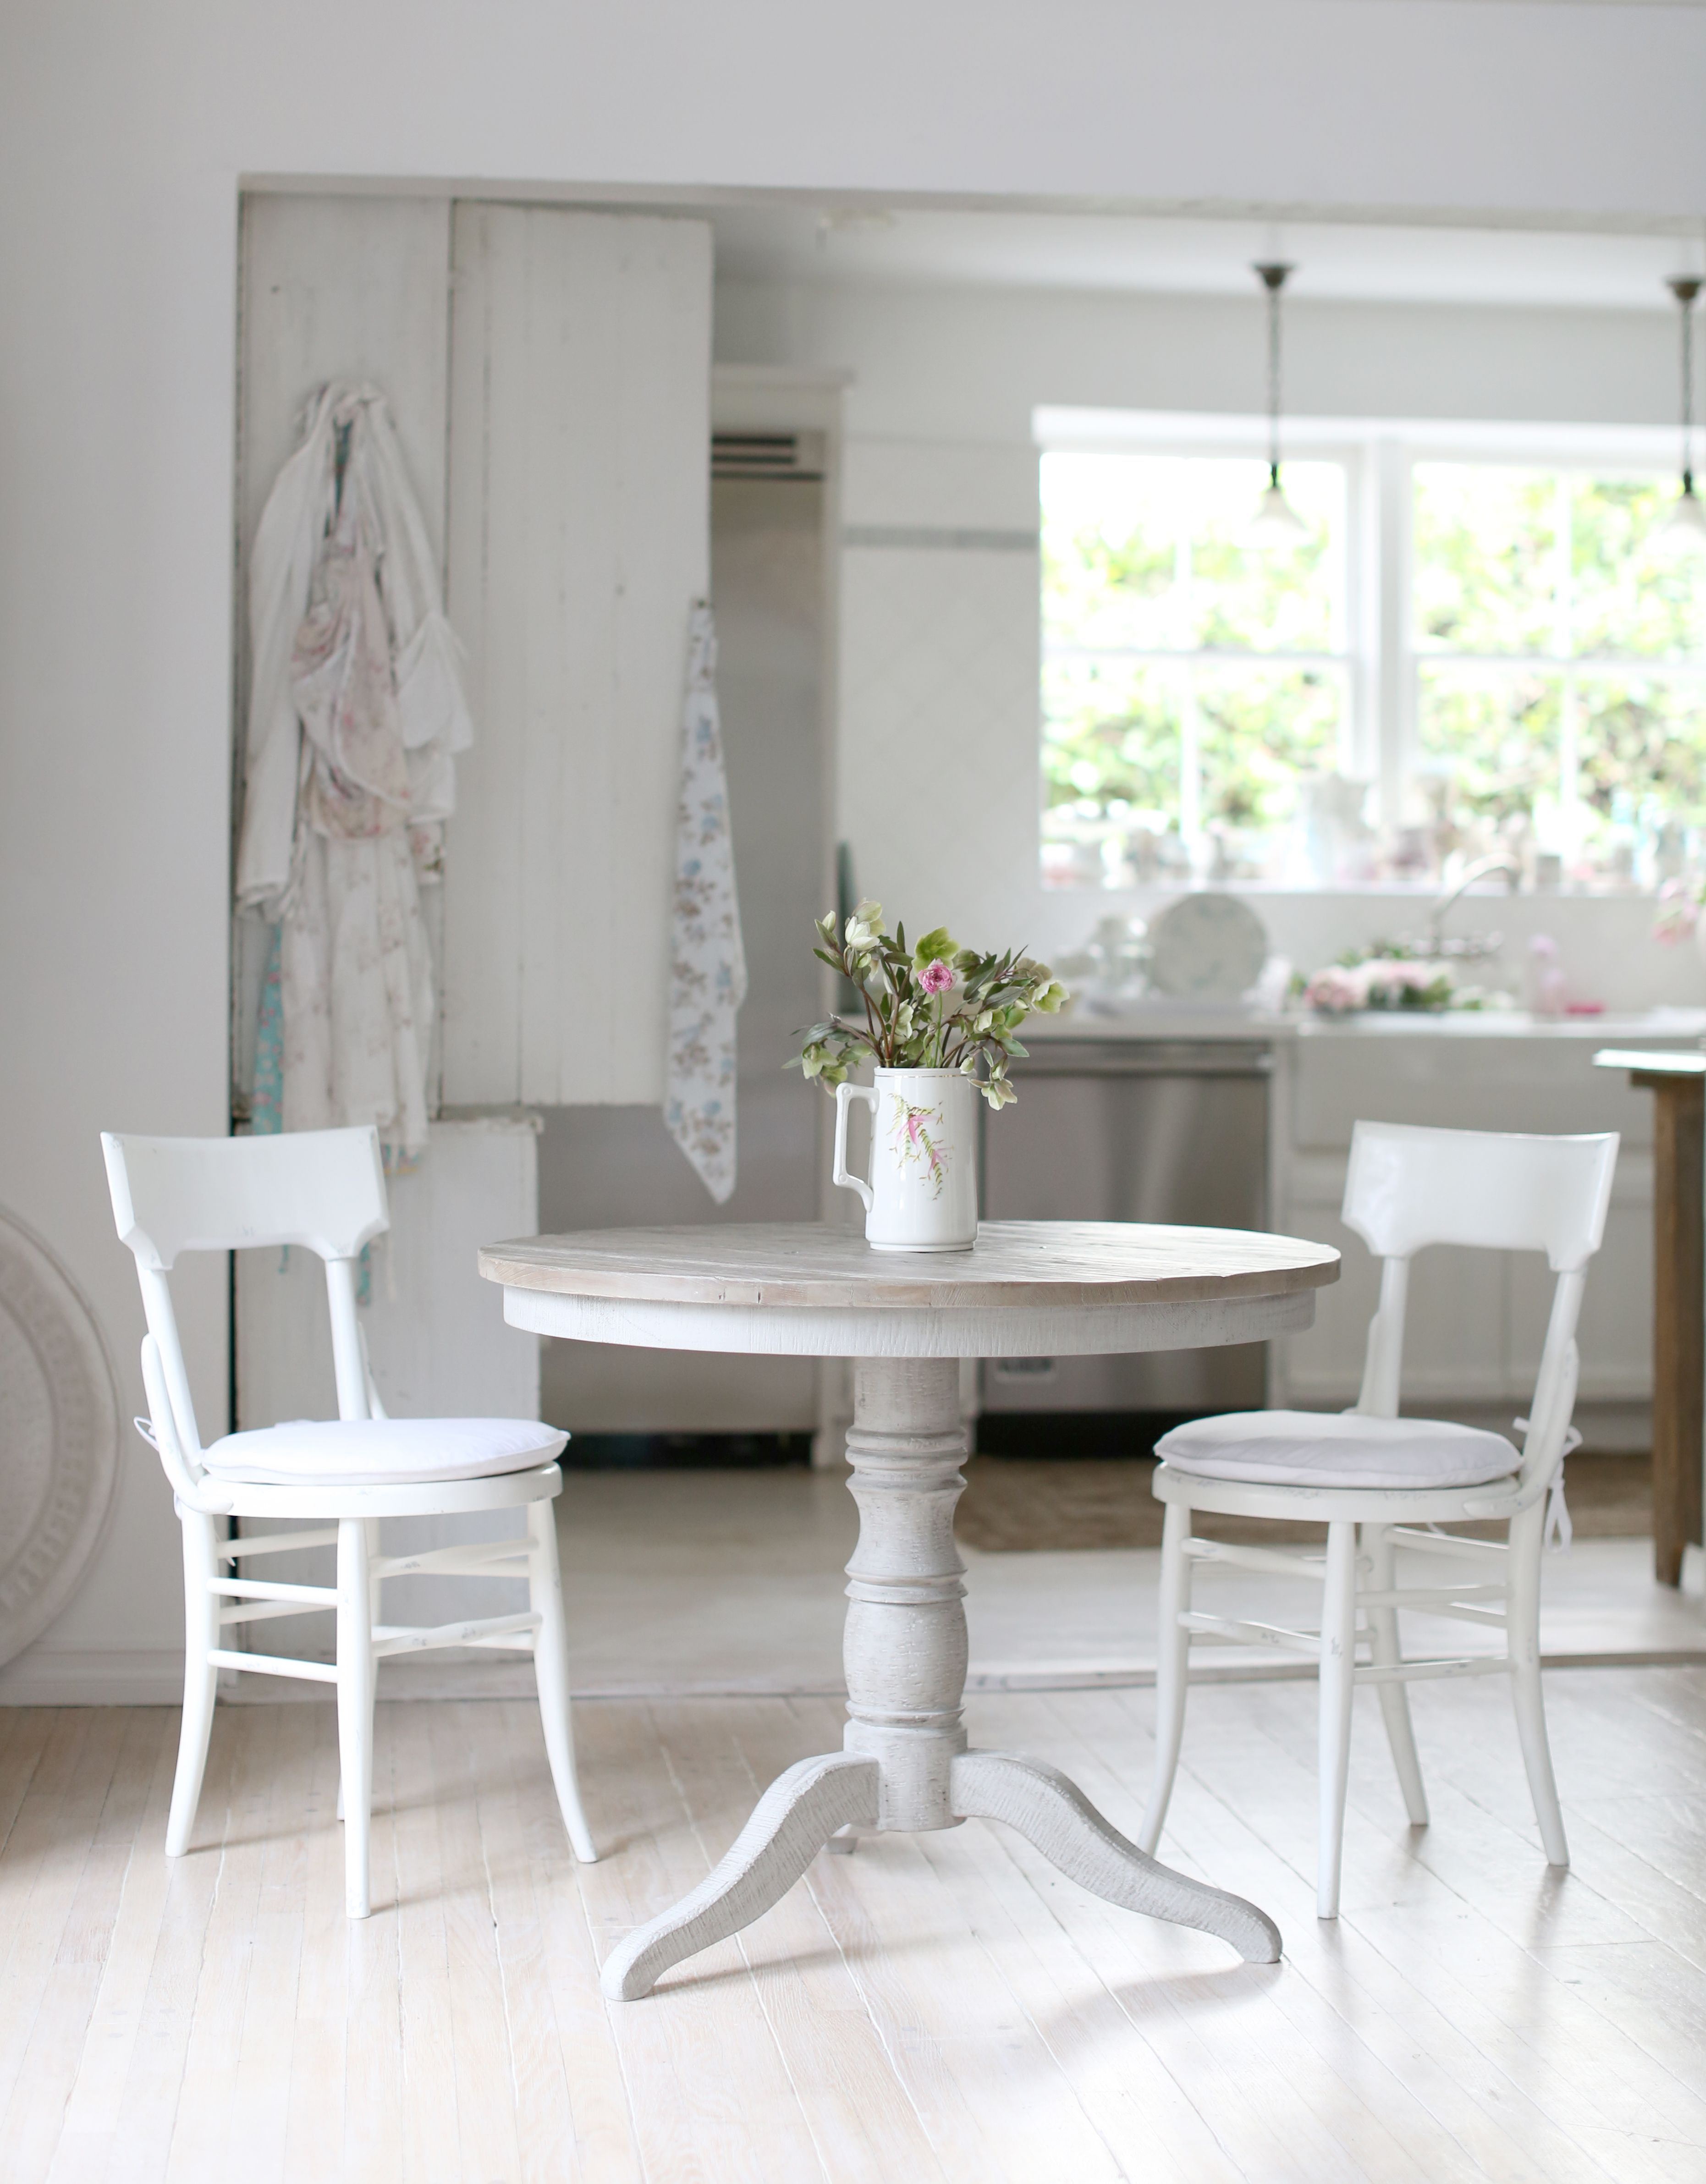 The Redondo dining table is the perfect